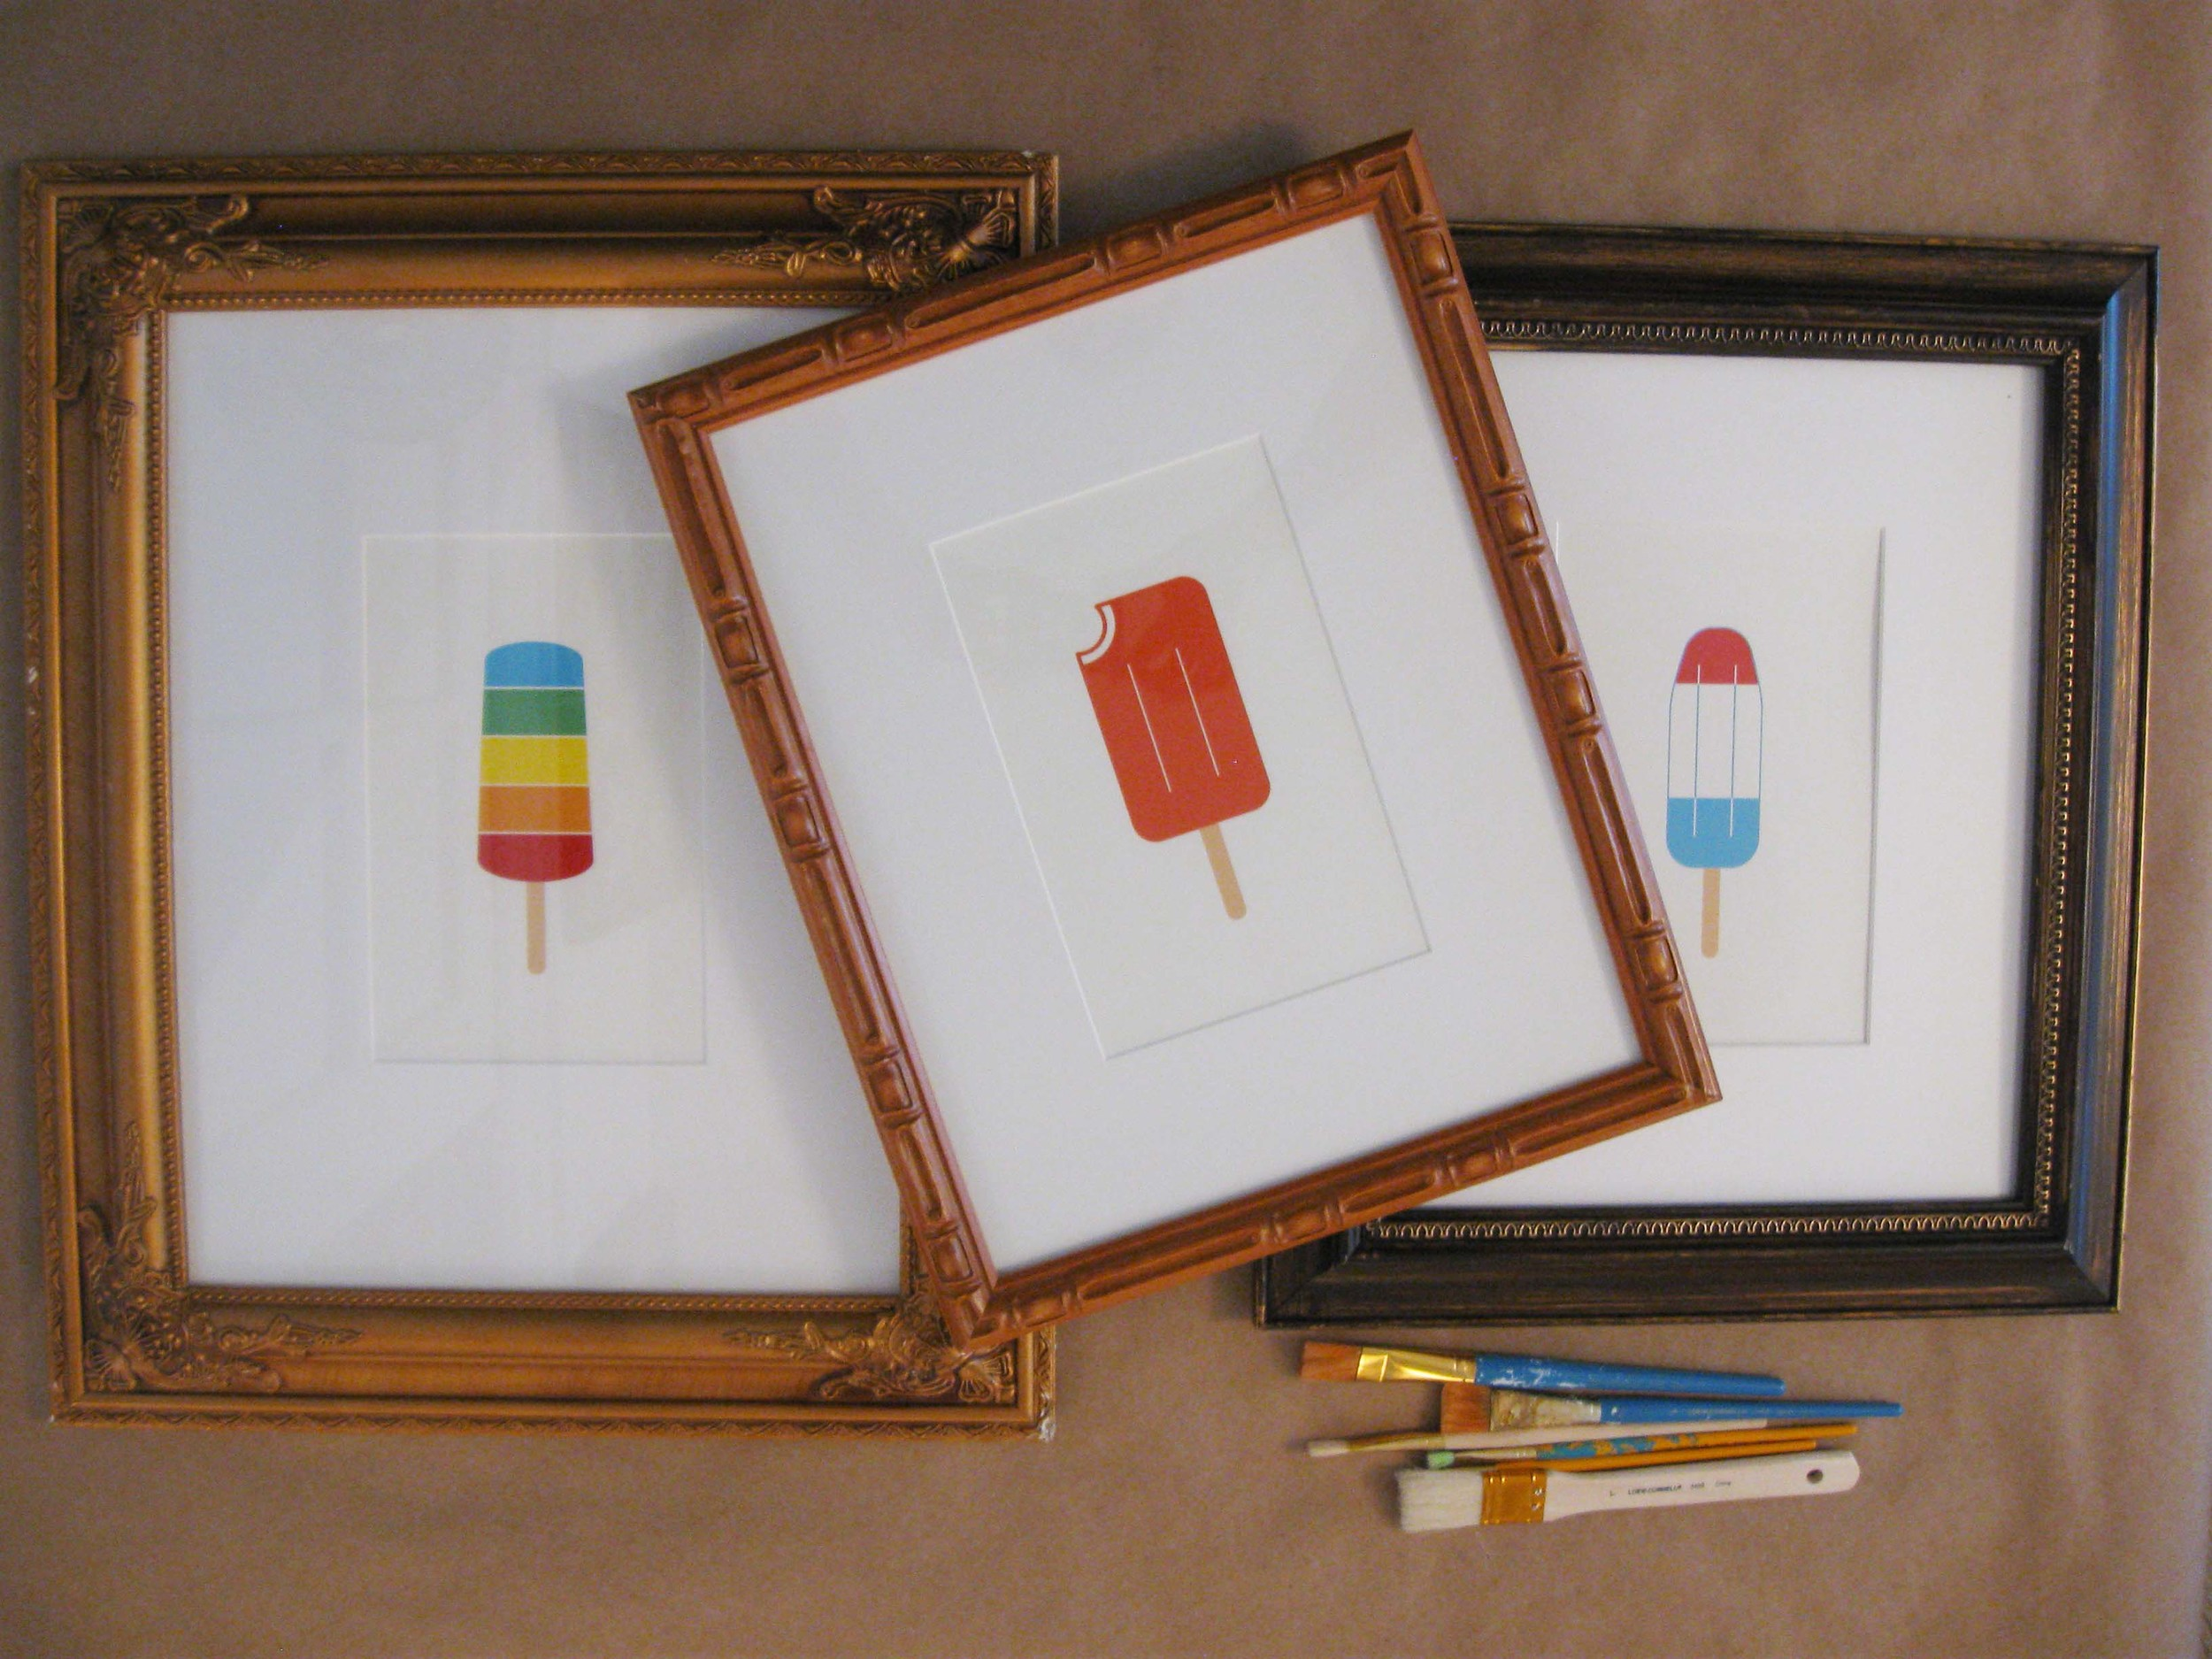 Popsicle art with mats inside janky frames